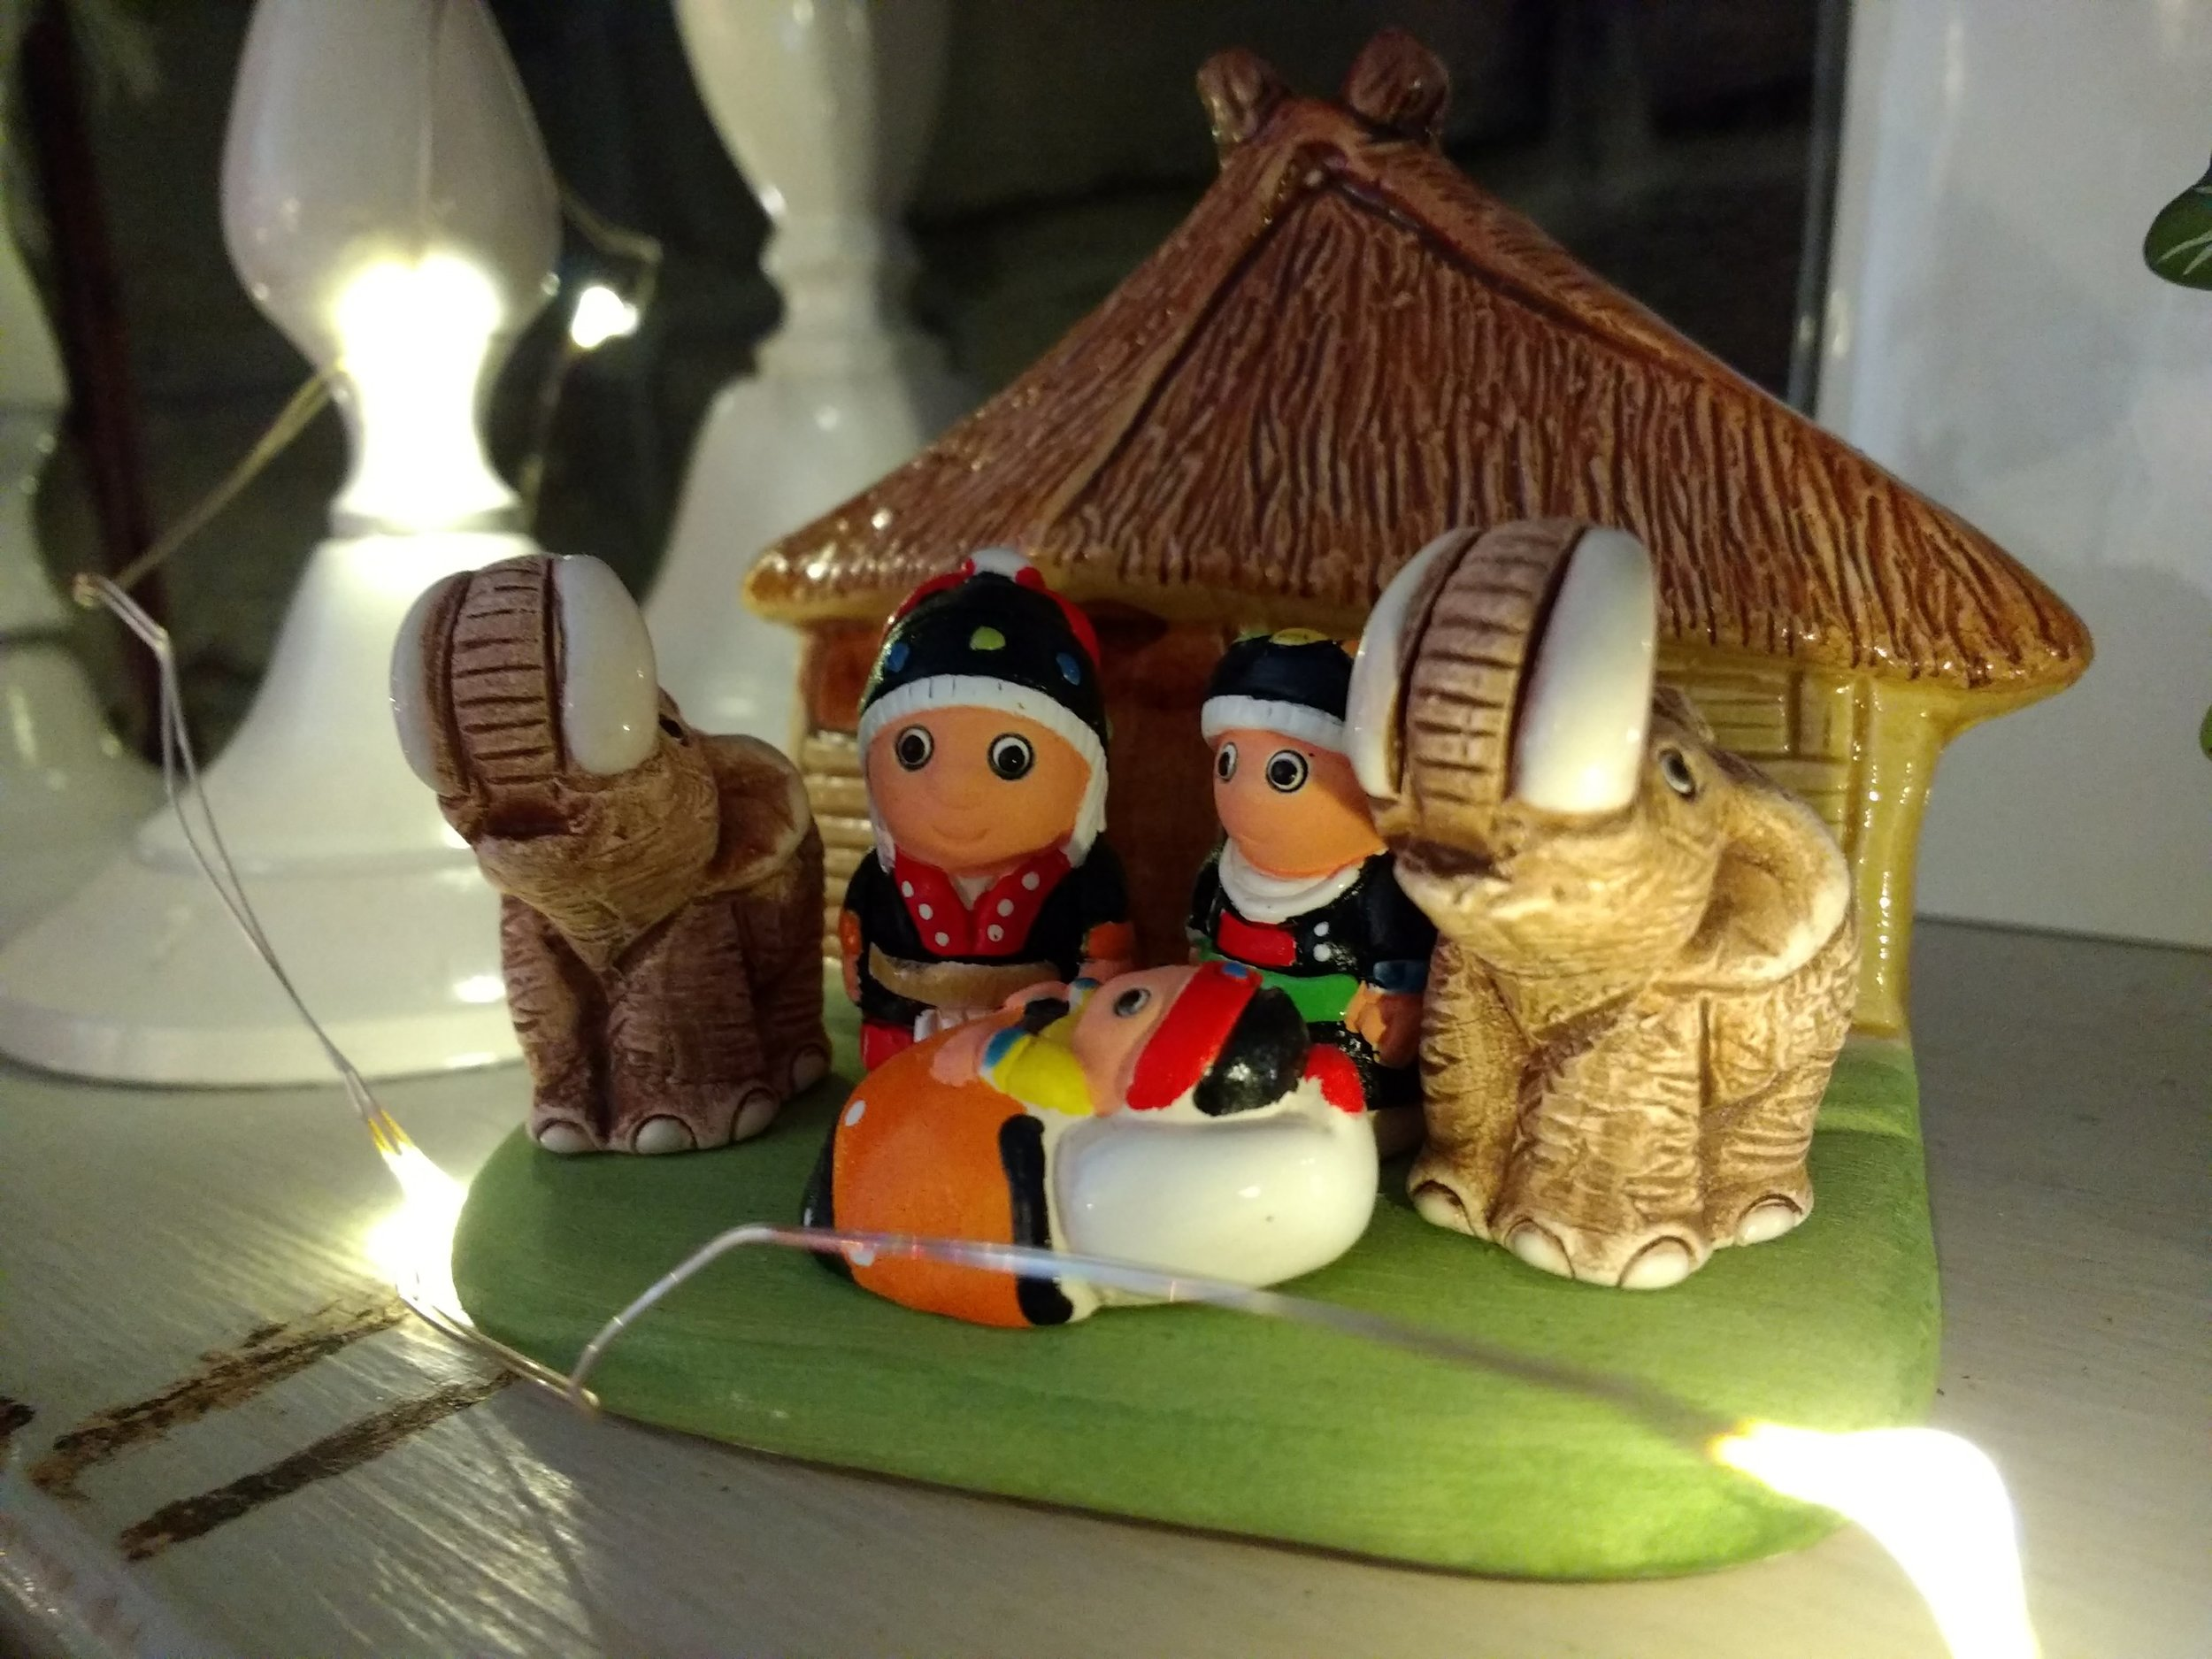 The nativity that makes no sense: made in Peru, depicting a (sort-of) Thai Mary and Joseph, with a red-headed Baby Jesus. And elephants.  Naturally.